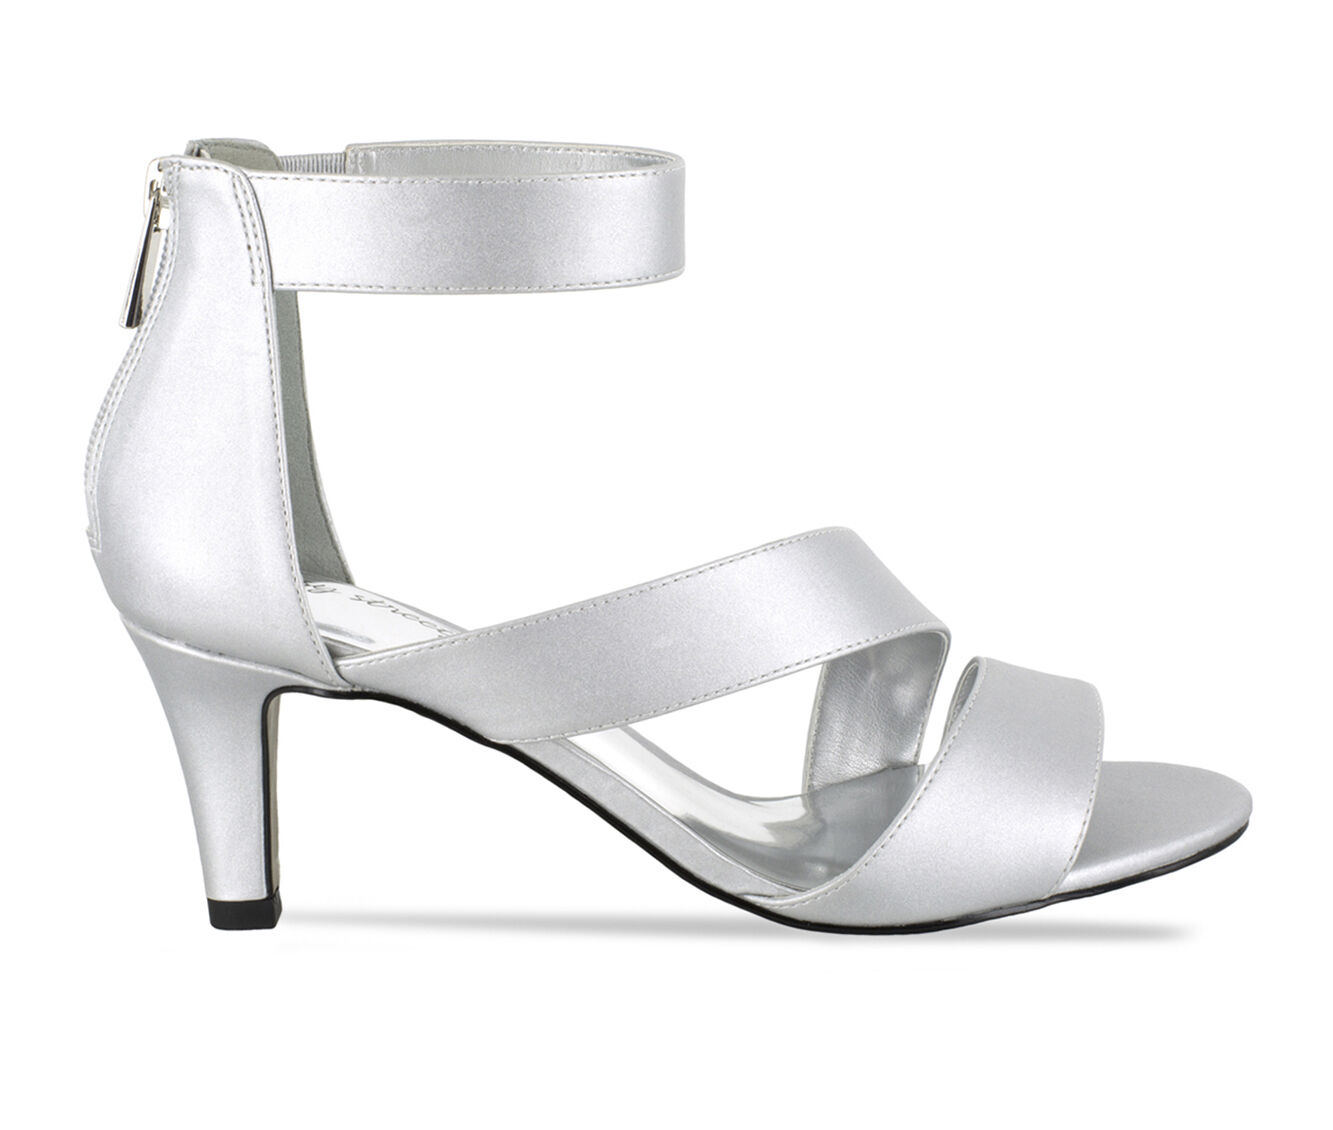 Women's Easy Street Maxi Strappy Heeled Dress Sandals Silver Satin